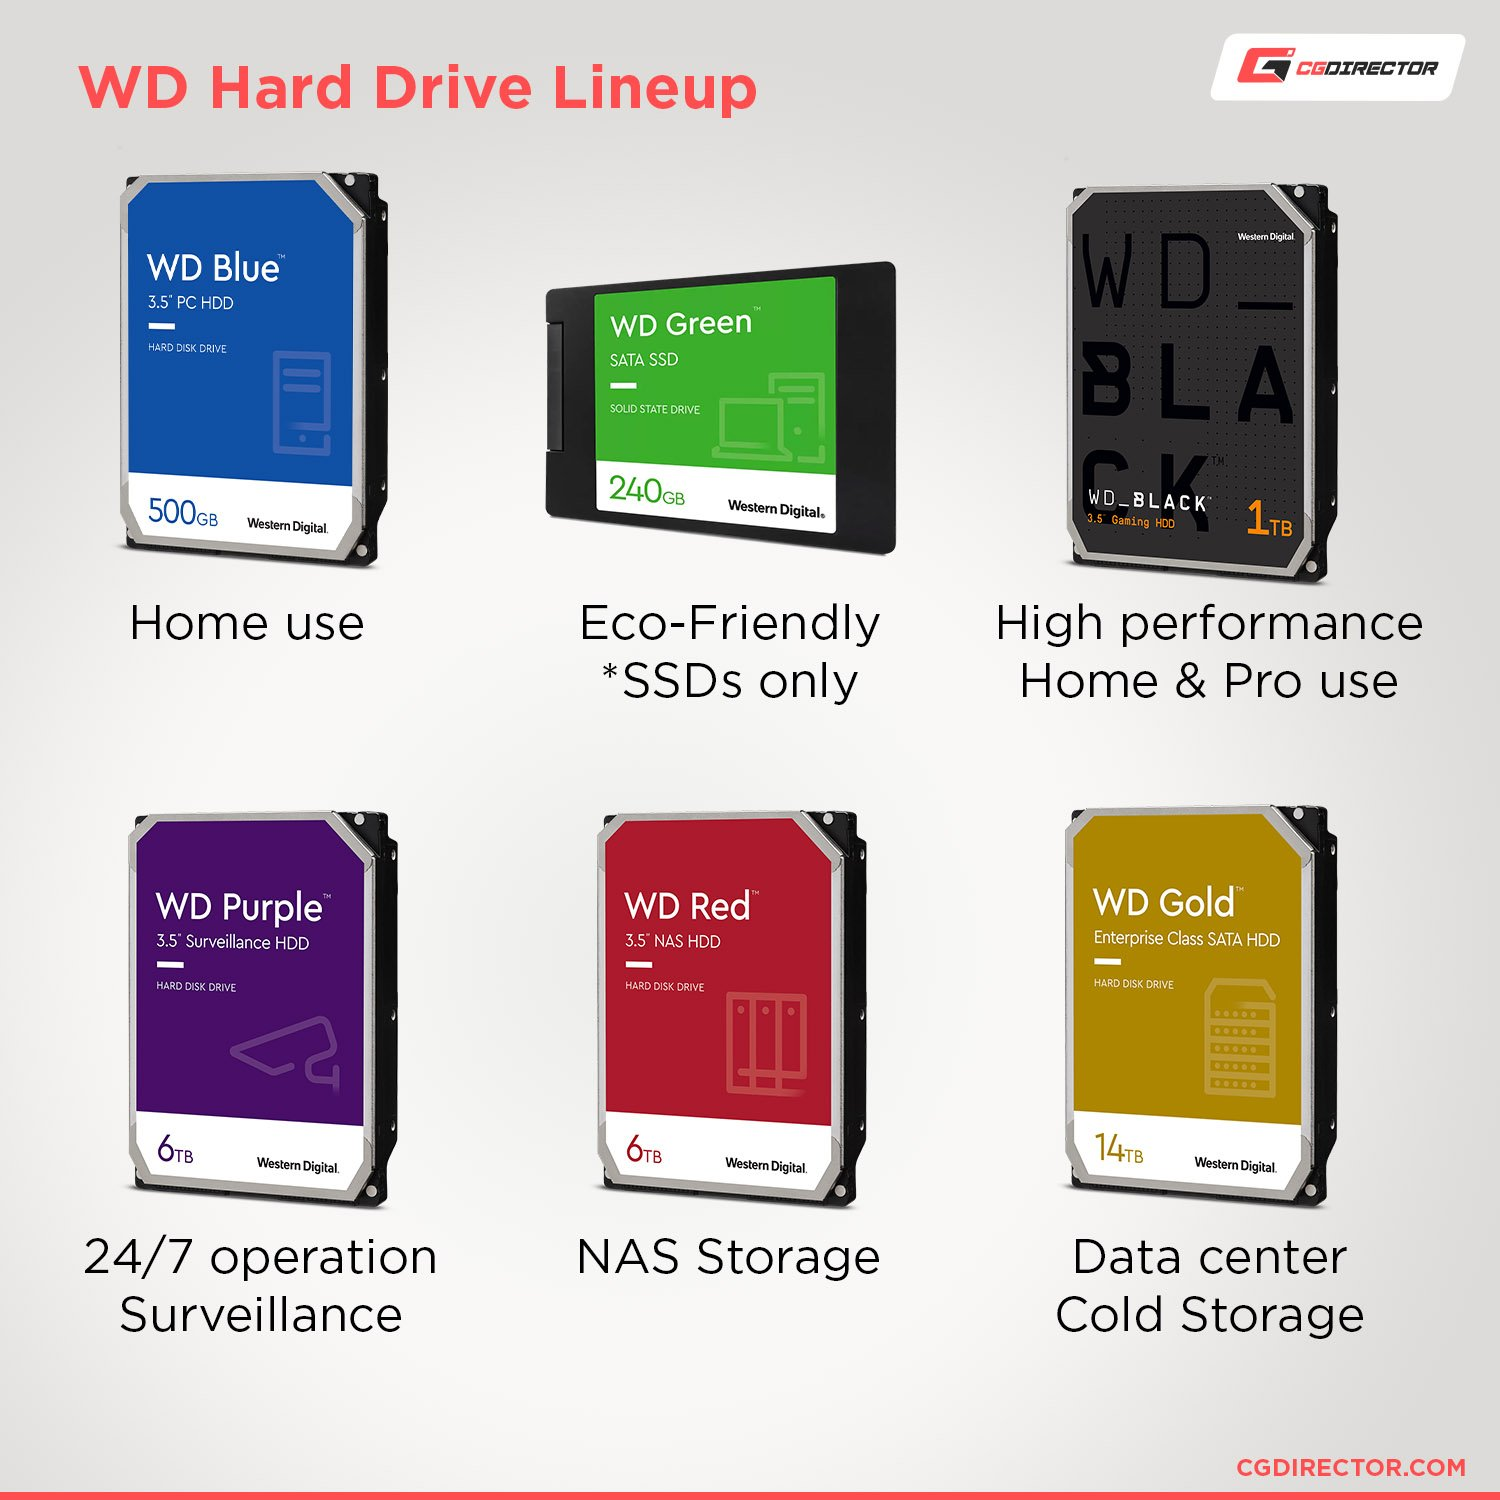 Western Digital HDD Colors - Line-up showing all colors including blue and black